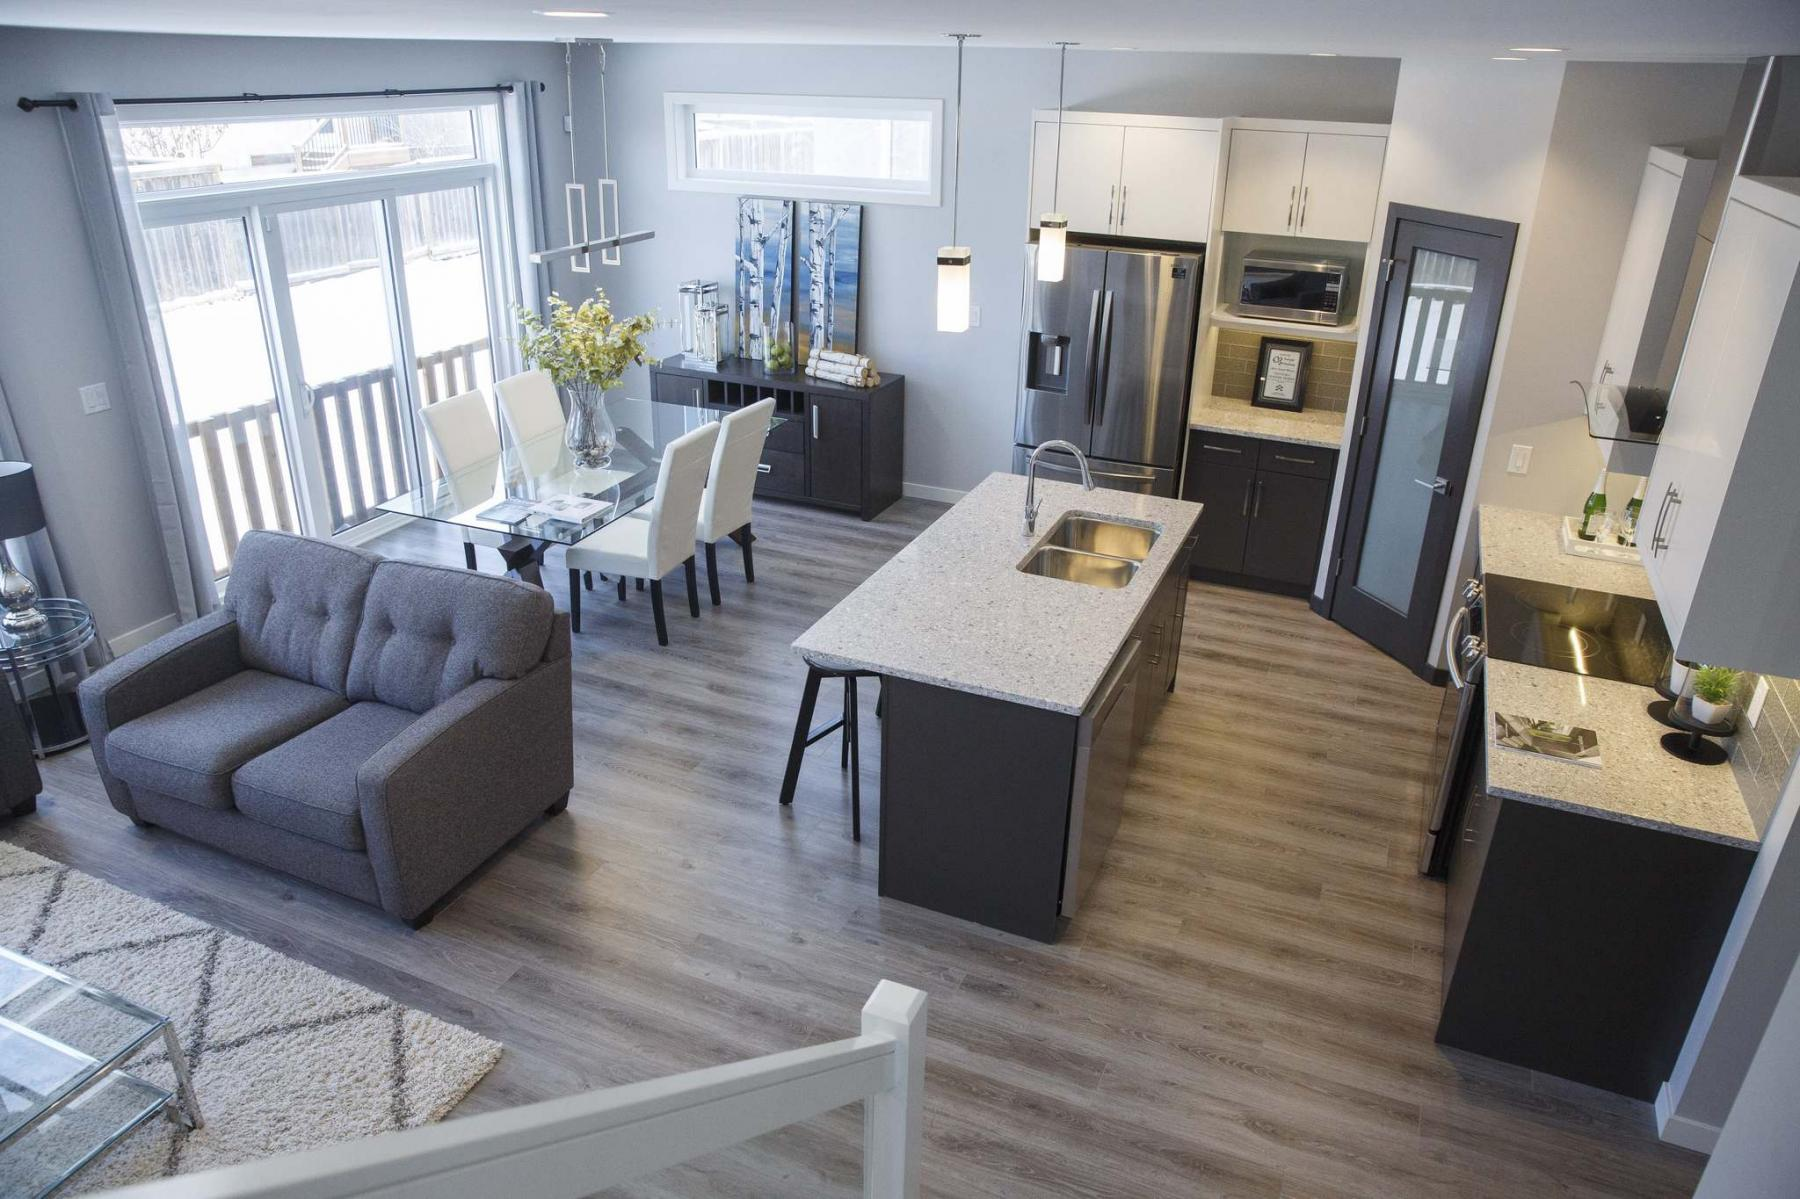 <p>The kitchen features off-white and dark taupe cabinets, which both pair nicely with the taupe quartz countertops and tile backsplash. (Mike Deal / Winnipeg Free Press)</p>